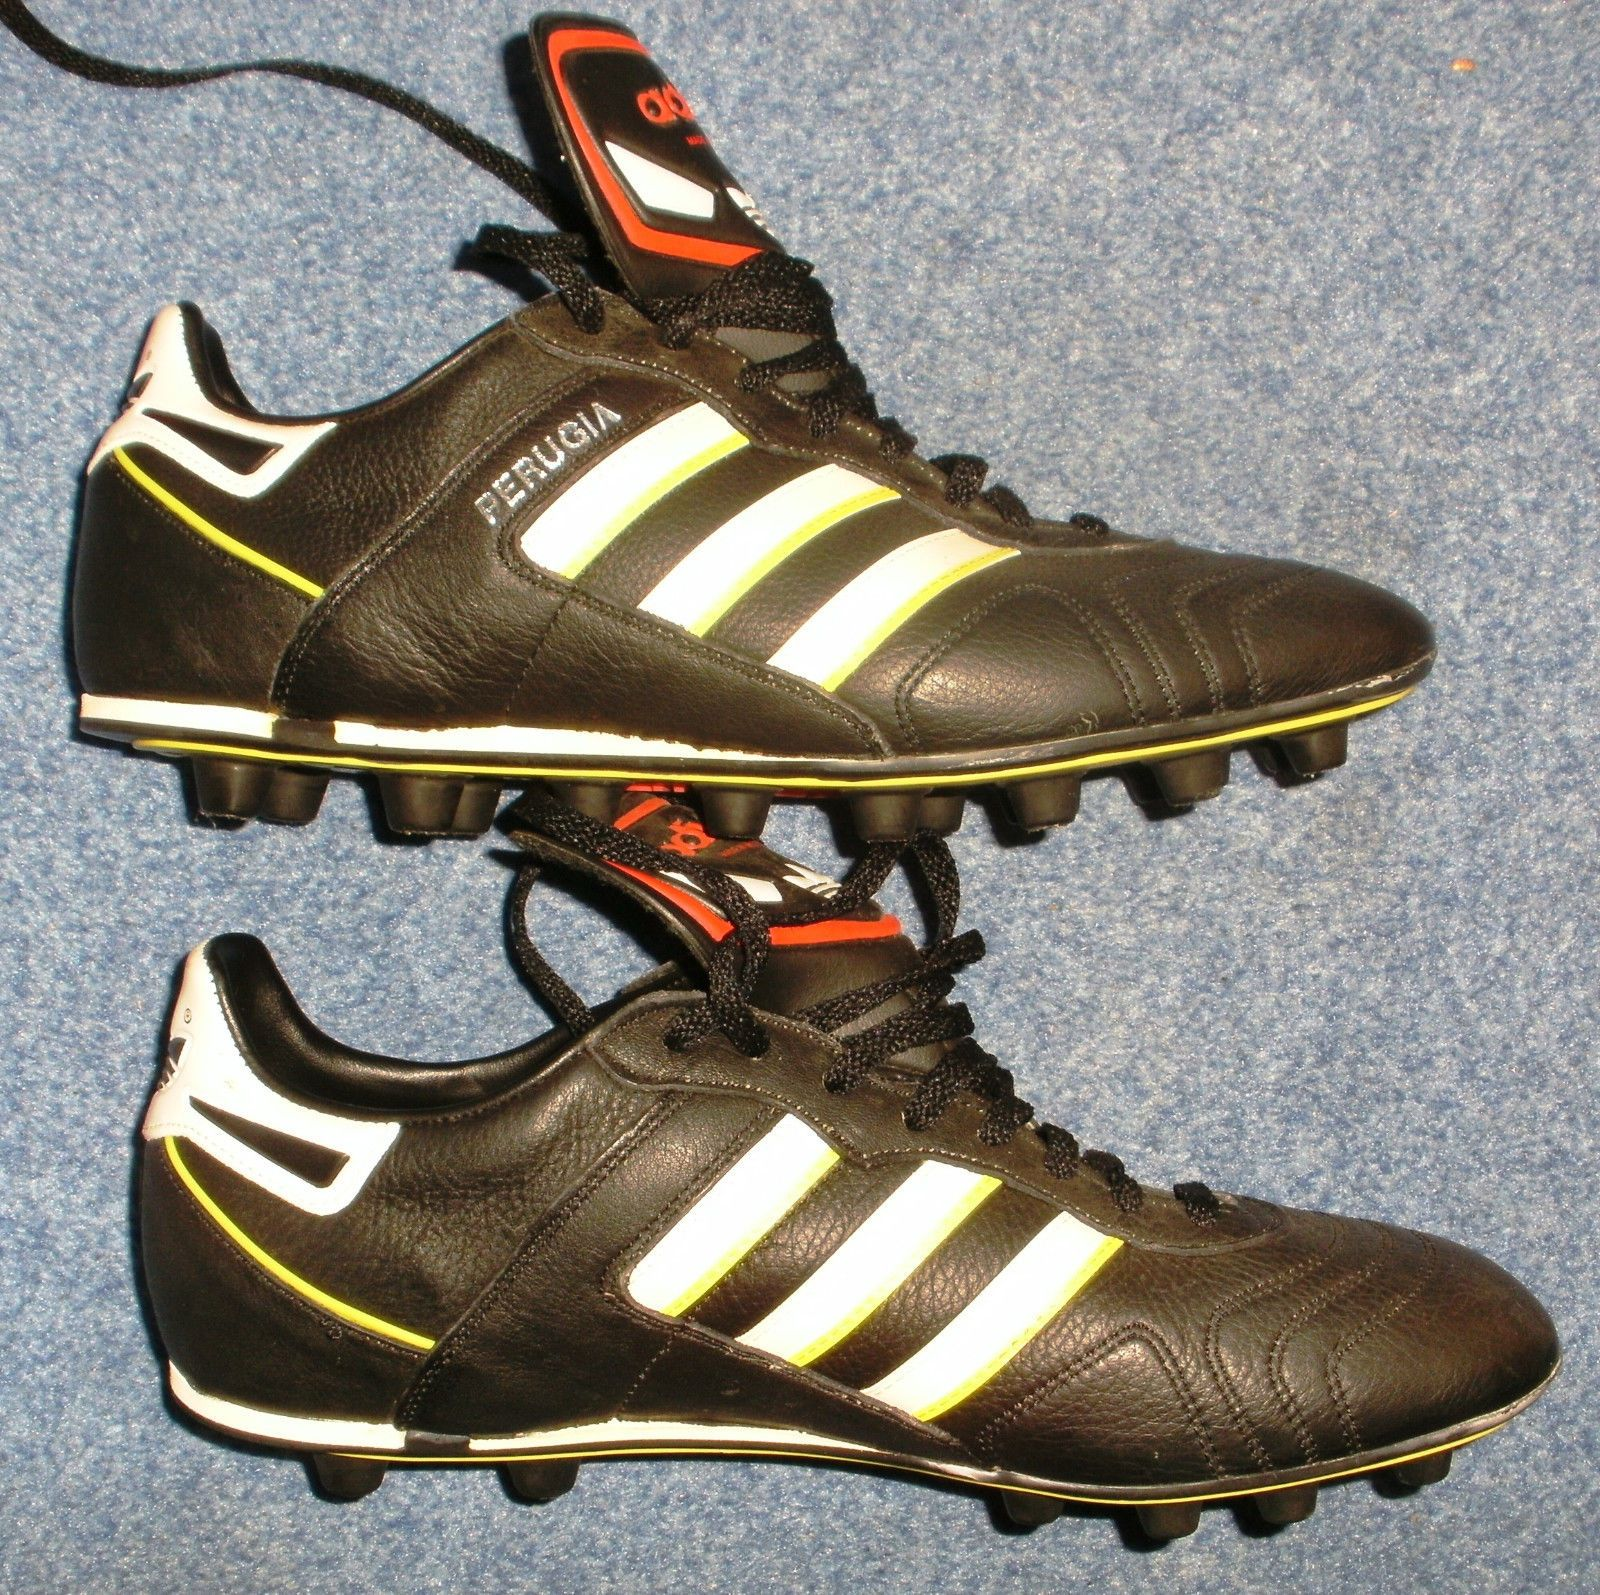 7c27c9f64 Find many great new & used options and get the best deals for Vintage  Collectors Shoes Adidas Football Shoes Perugia FG World Cup 1990 New, Size  8,5 = 42 at ...